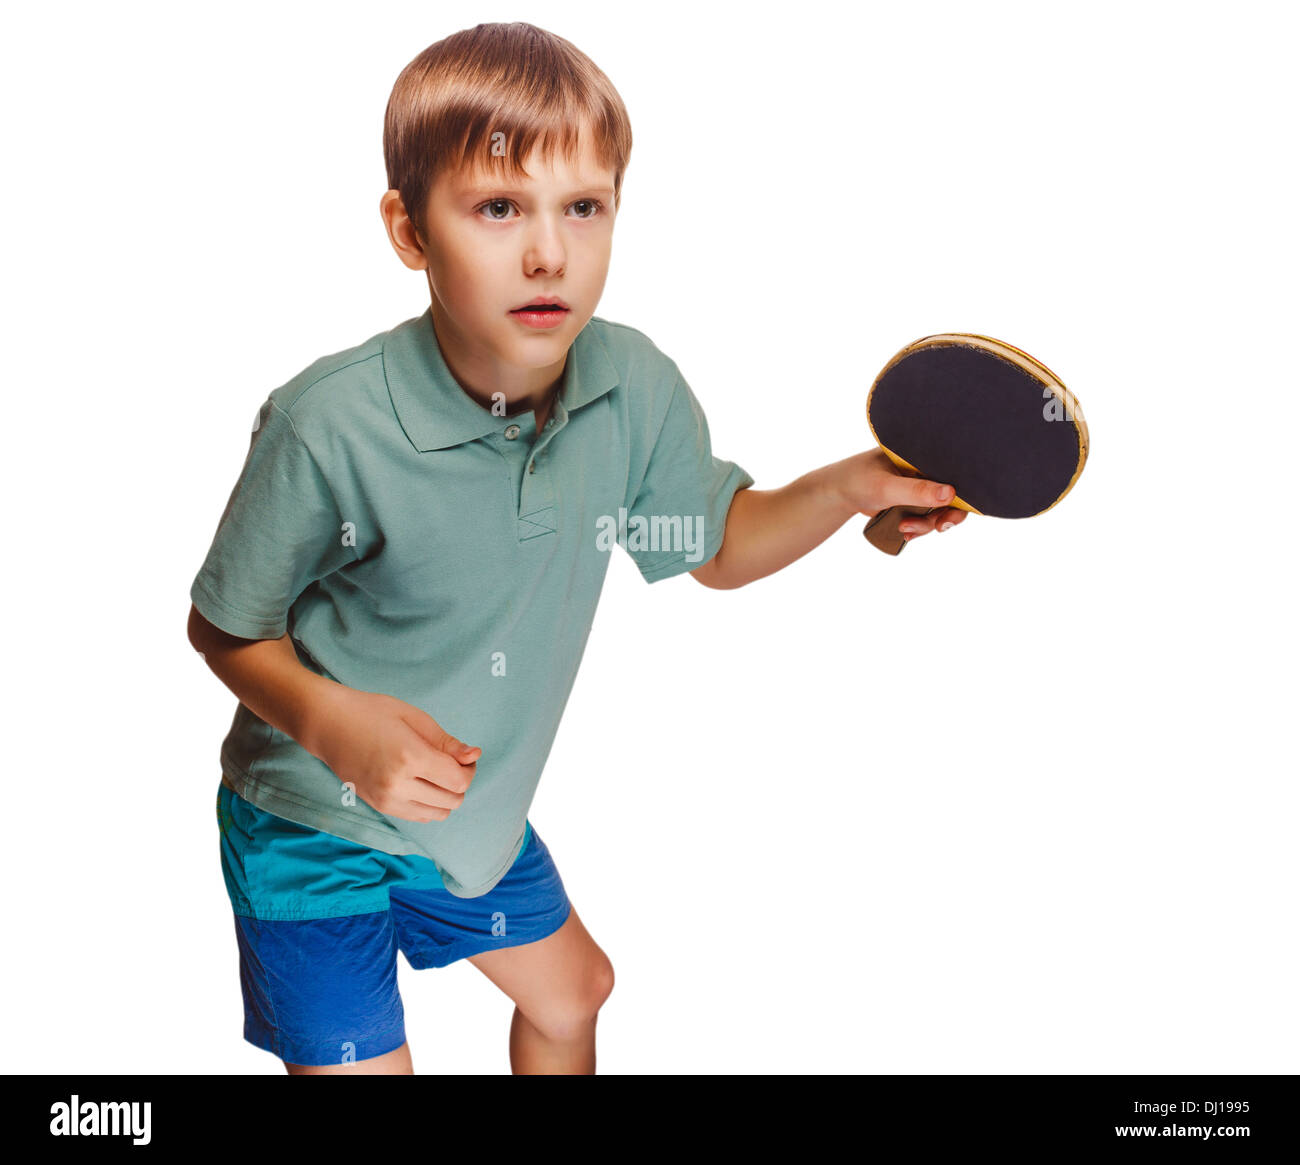 boy blond man playing table tennis forehand takes topspin isolated on white background - Stock Image